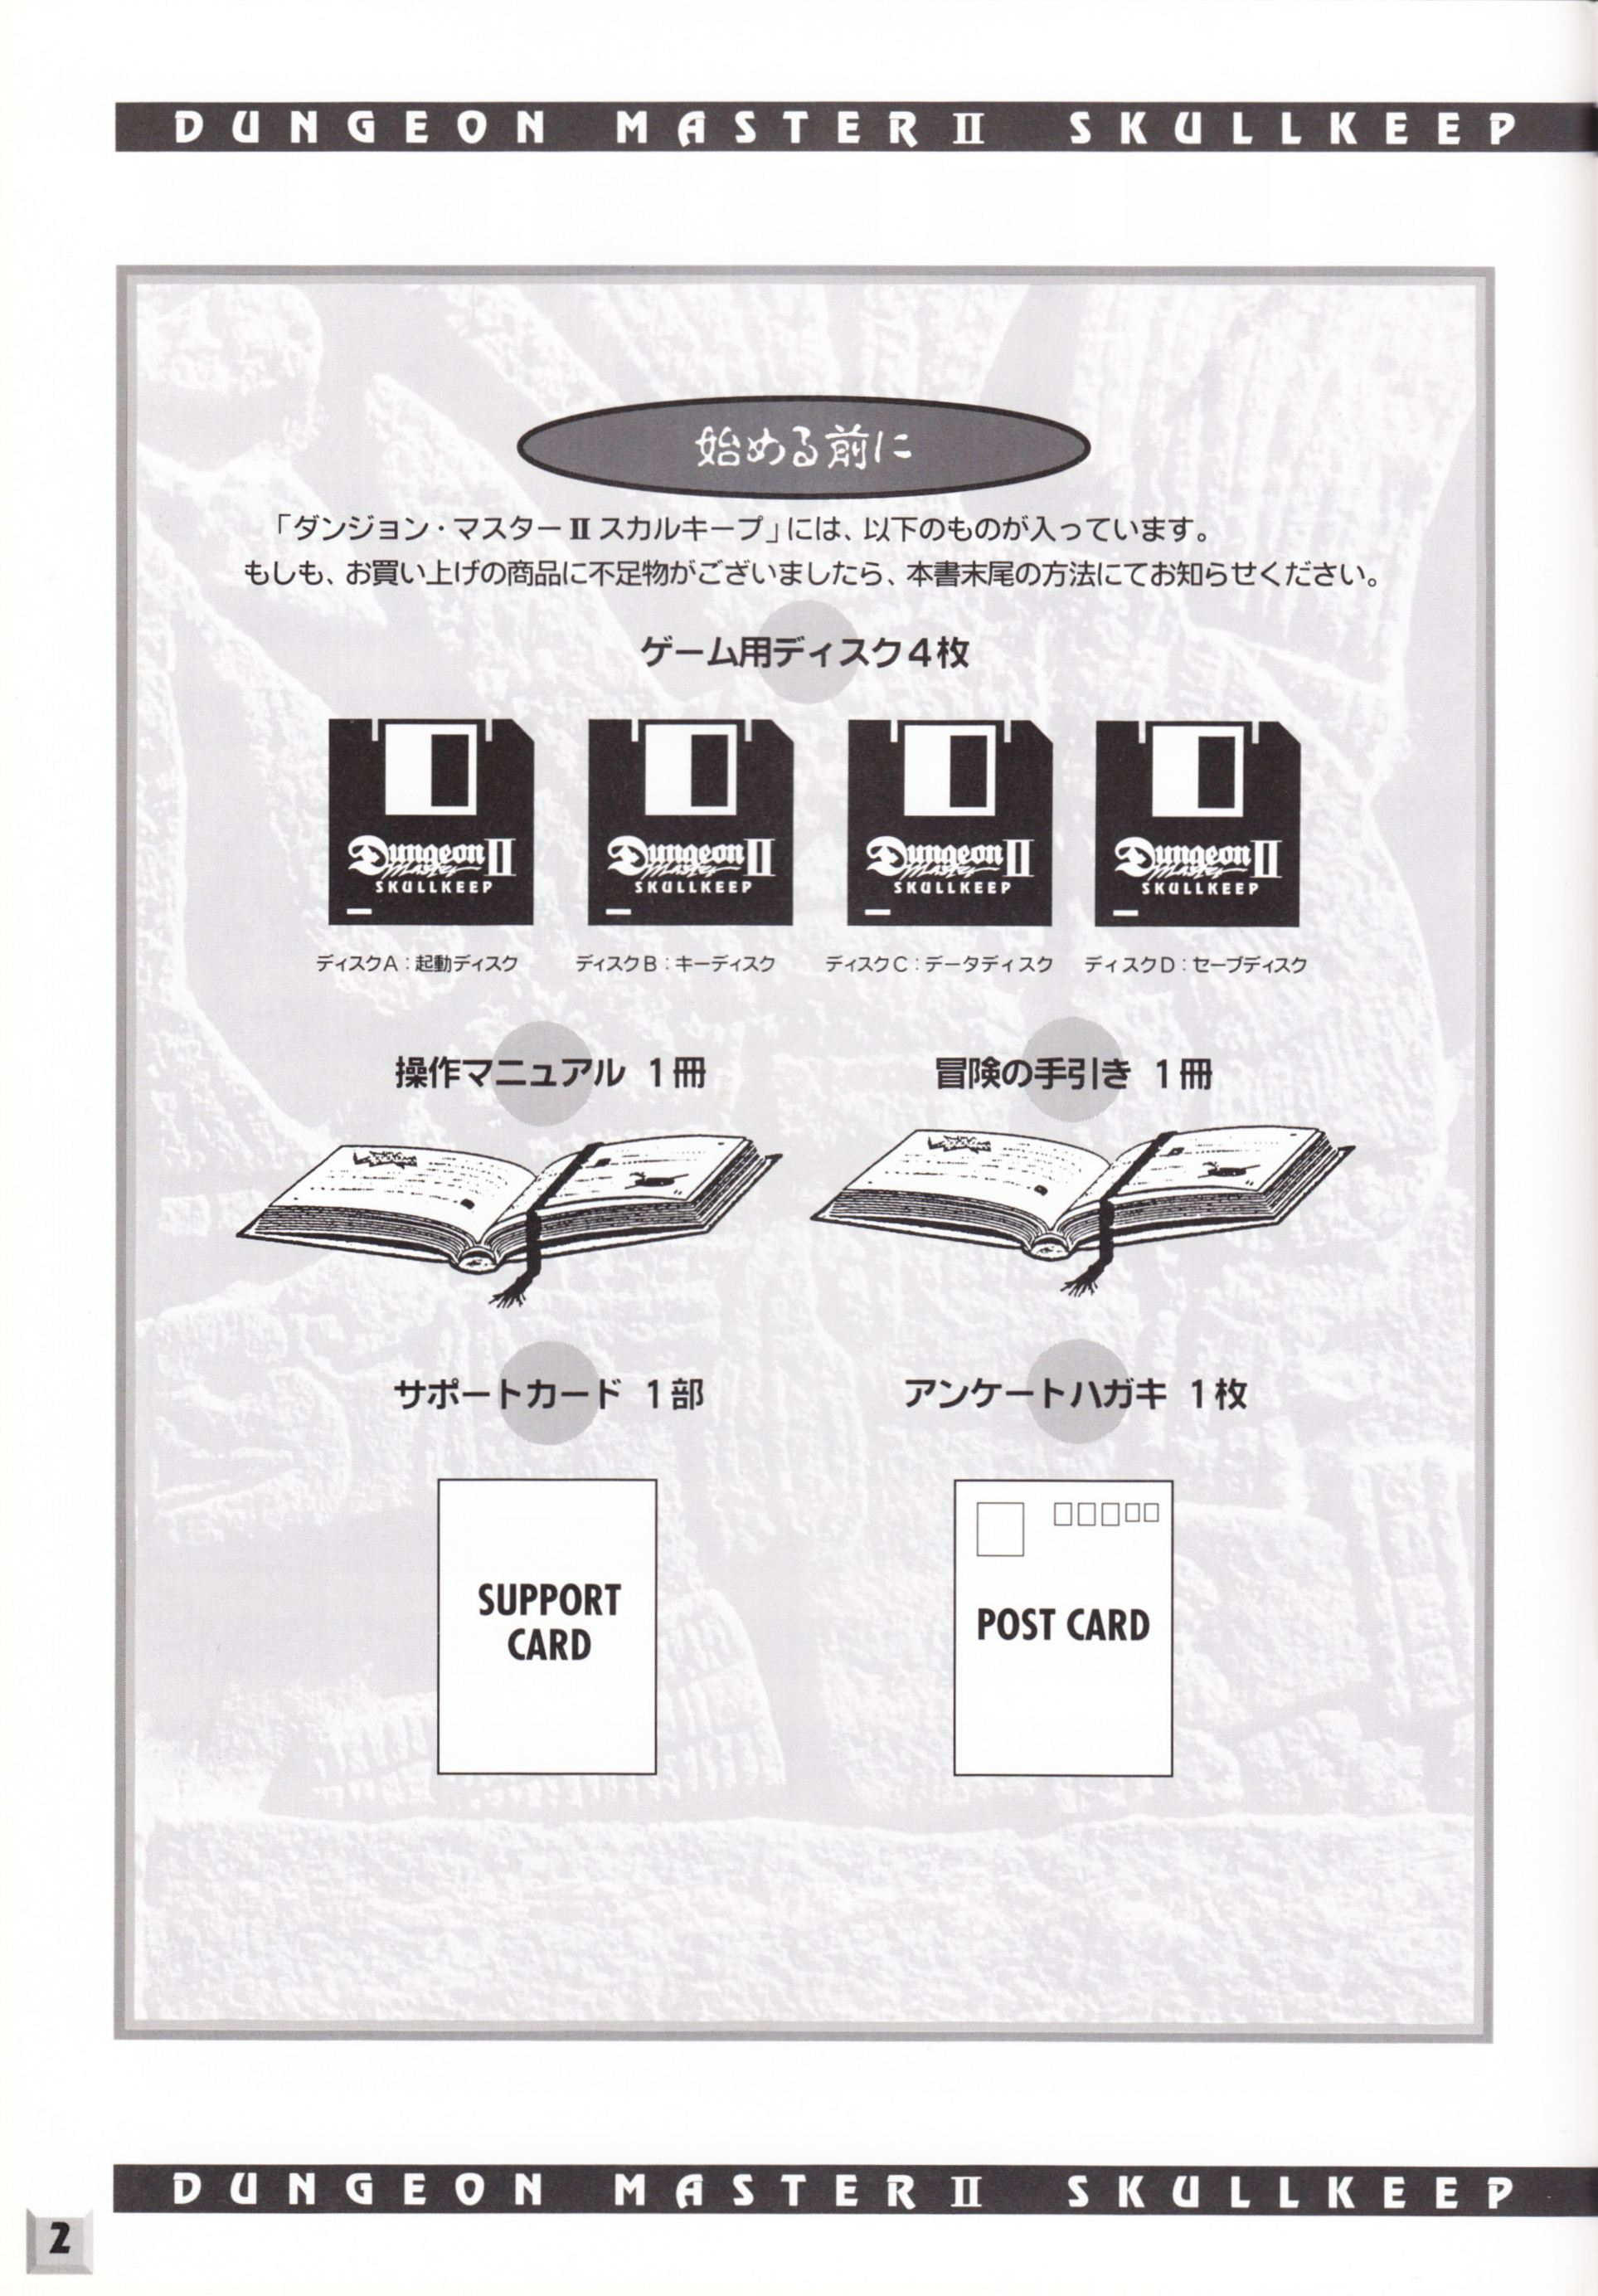 Game - Dungeon Master II - JP - PC-9801 - 3.5-inch - An Operation Manual - Page 004 - Scan